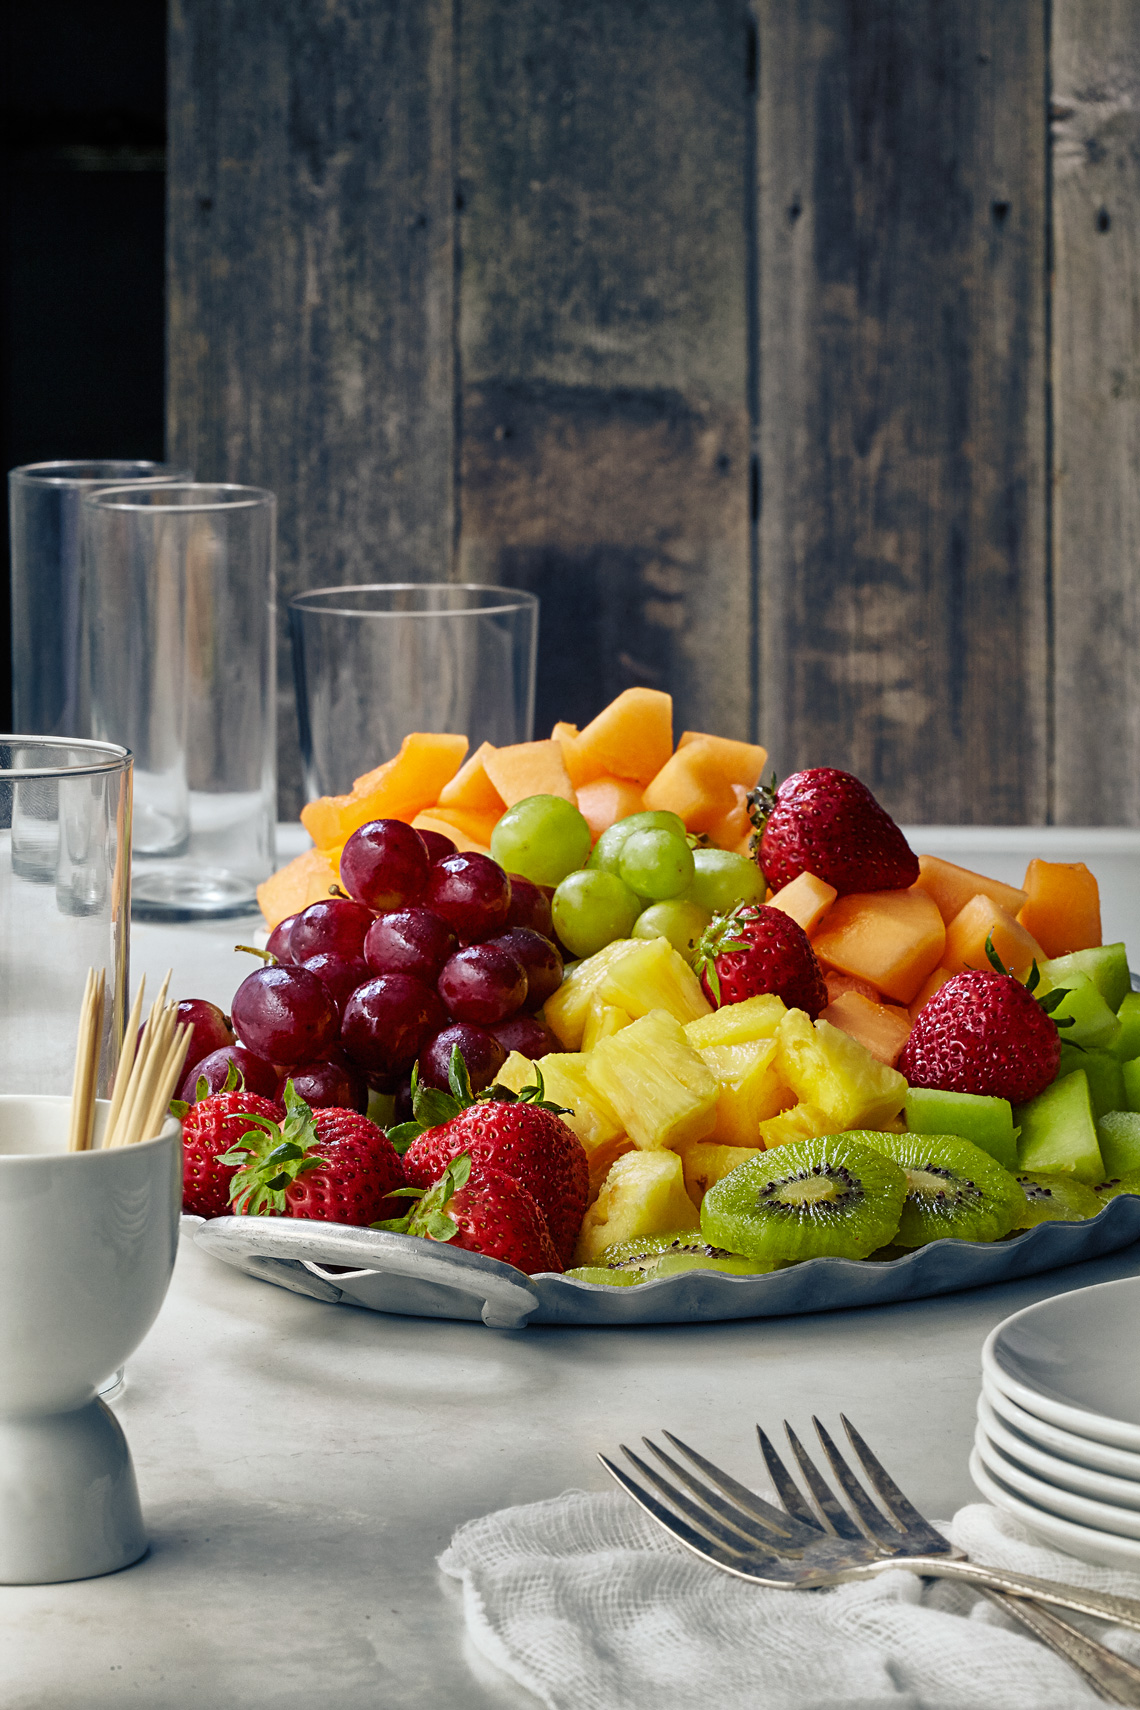 FRESH-FRUIT-PLATE